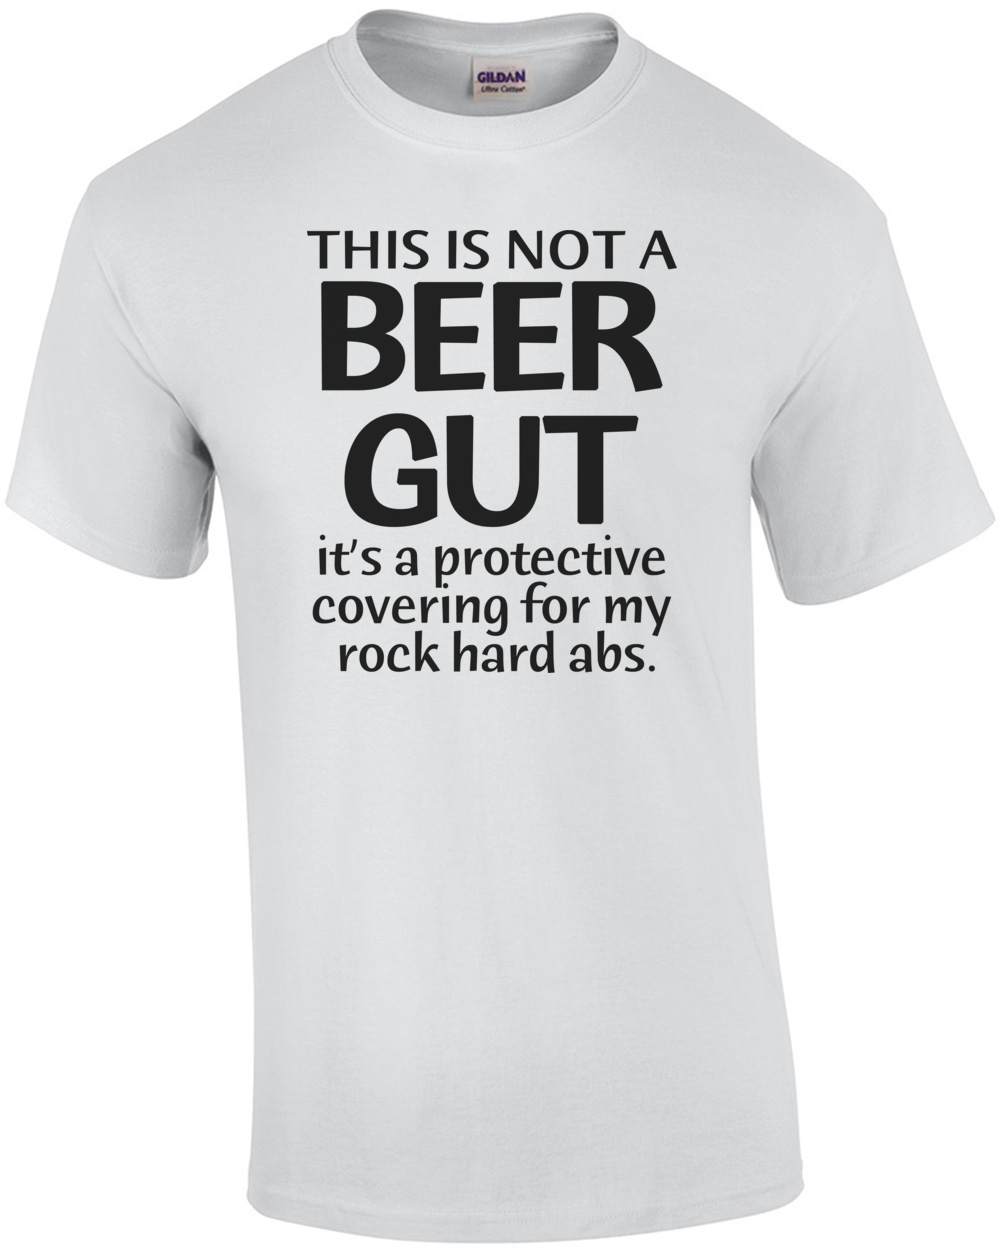 28092148 this-is-not-a-beer-gut-funny-shirt-mens-regular-white_1.png